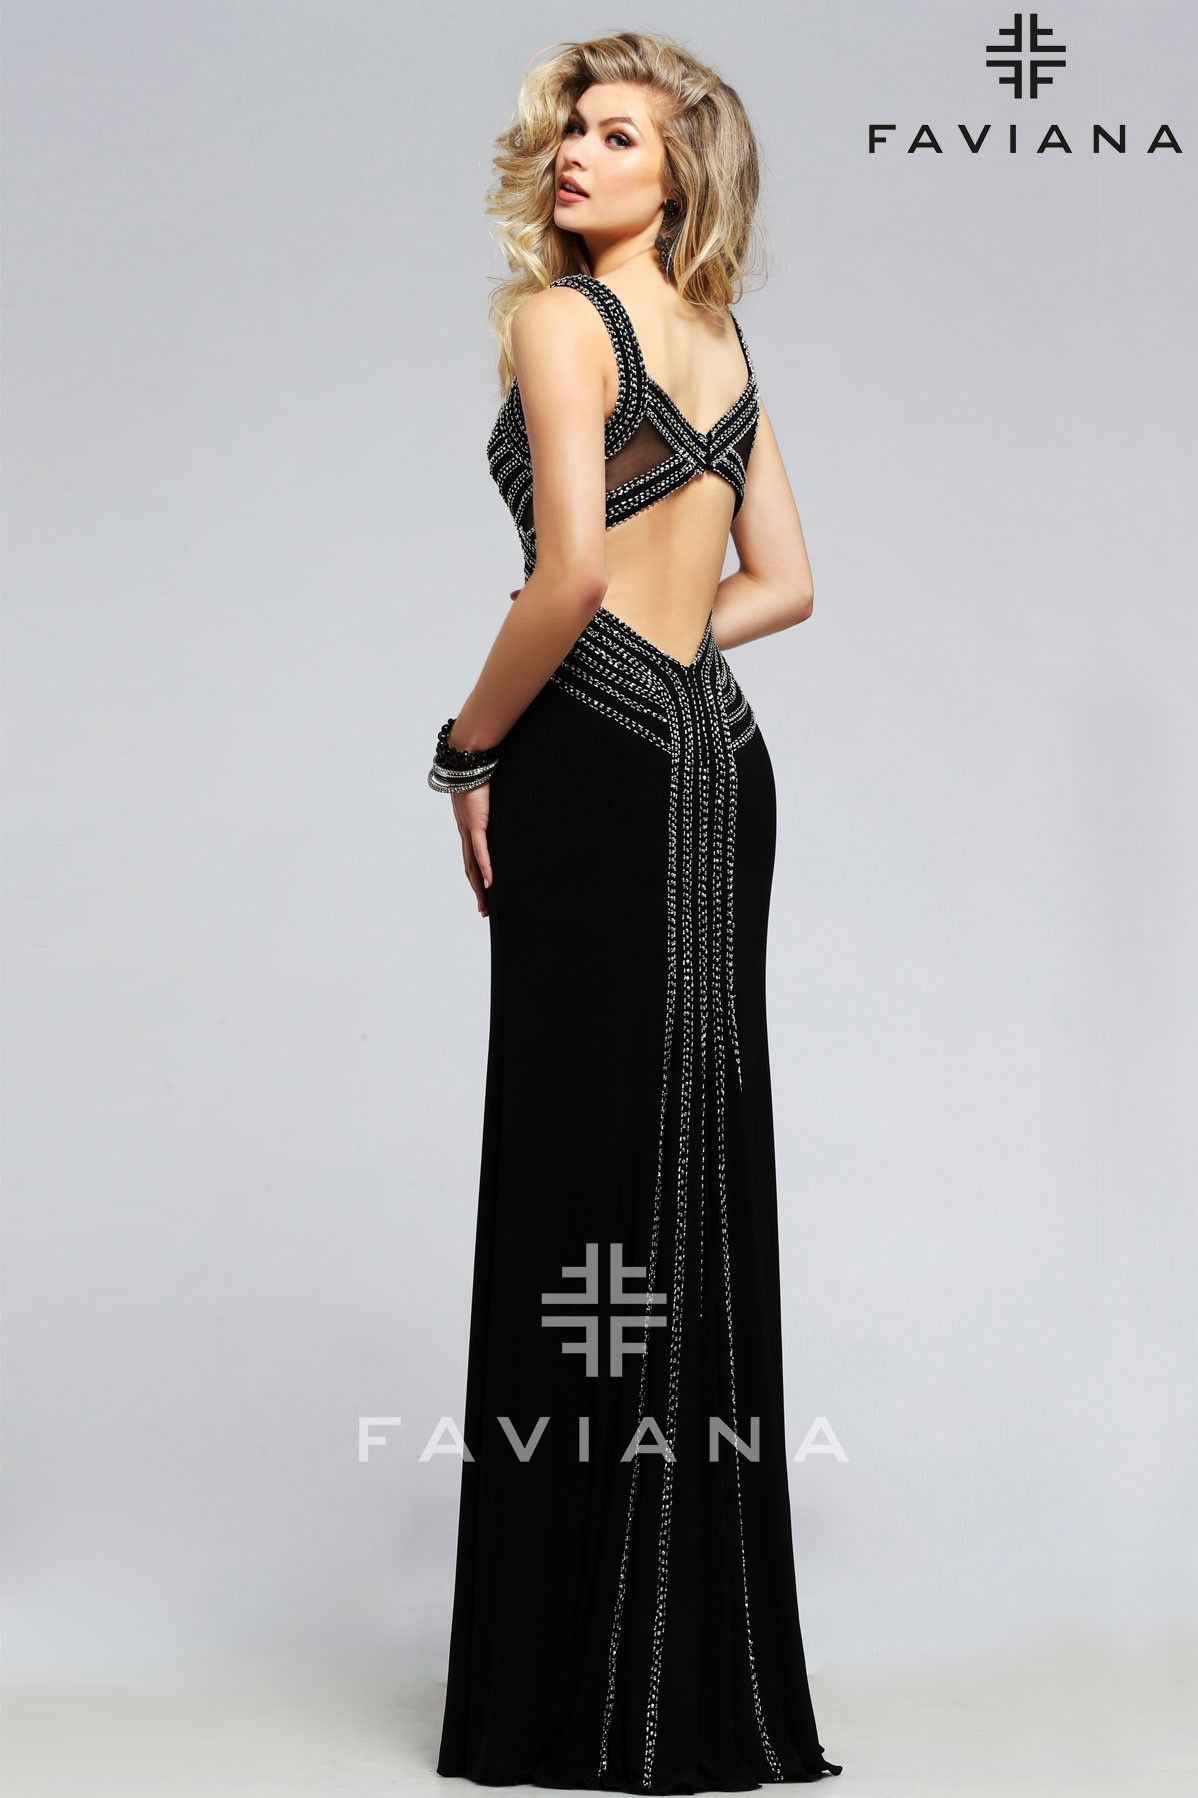 Faviana S7806 Black Cut-Outs Faviana Glamour #ipaprom | Prom Dresses ...